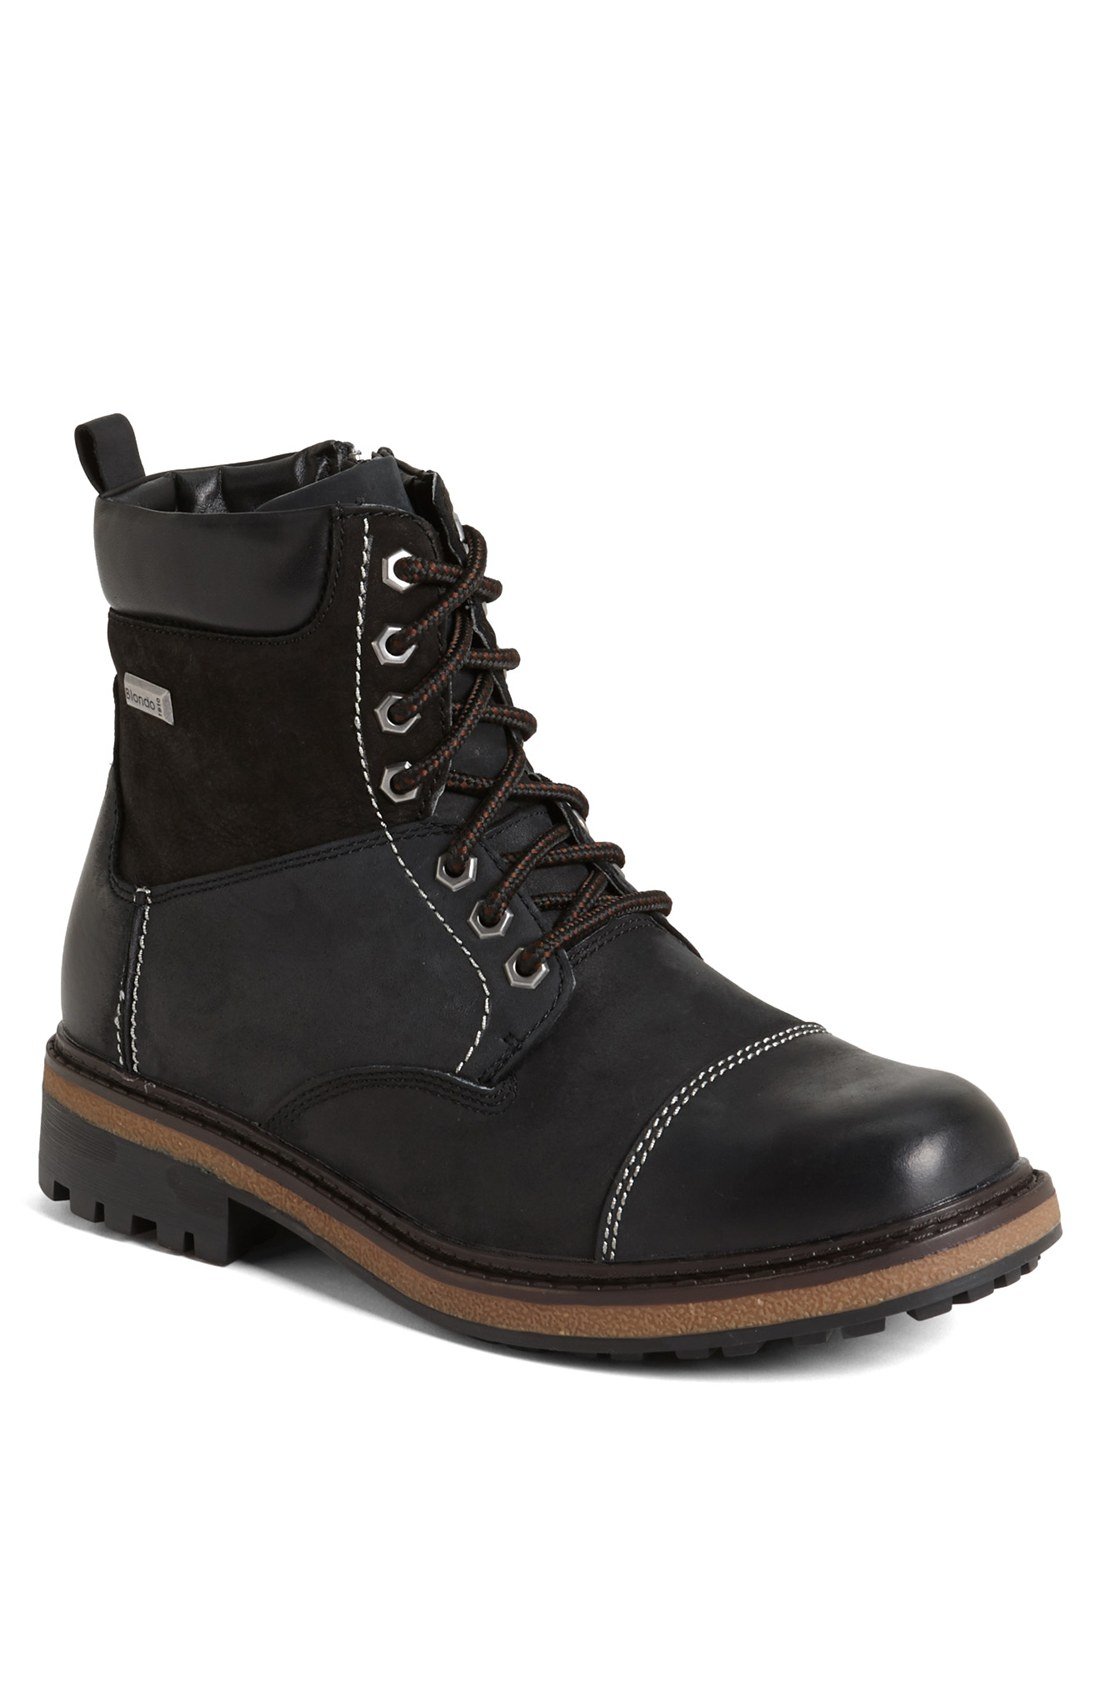 mens waterproof boots blondo u0027jarou0027 waterproof boot (men) | nordstrom ltpdxhi